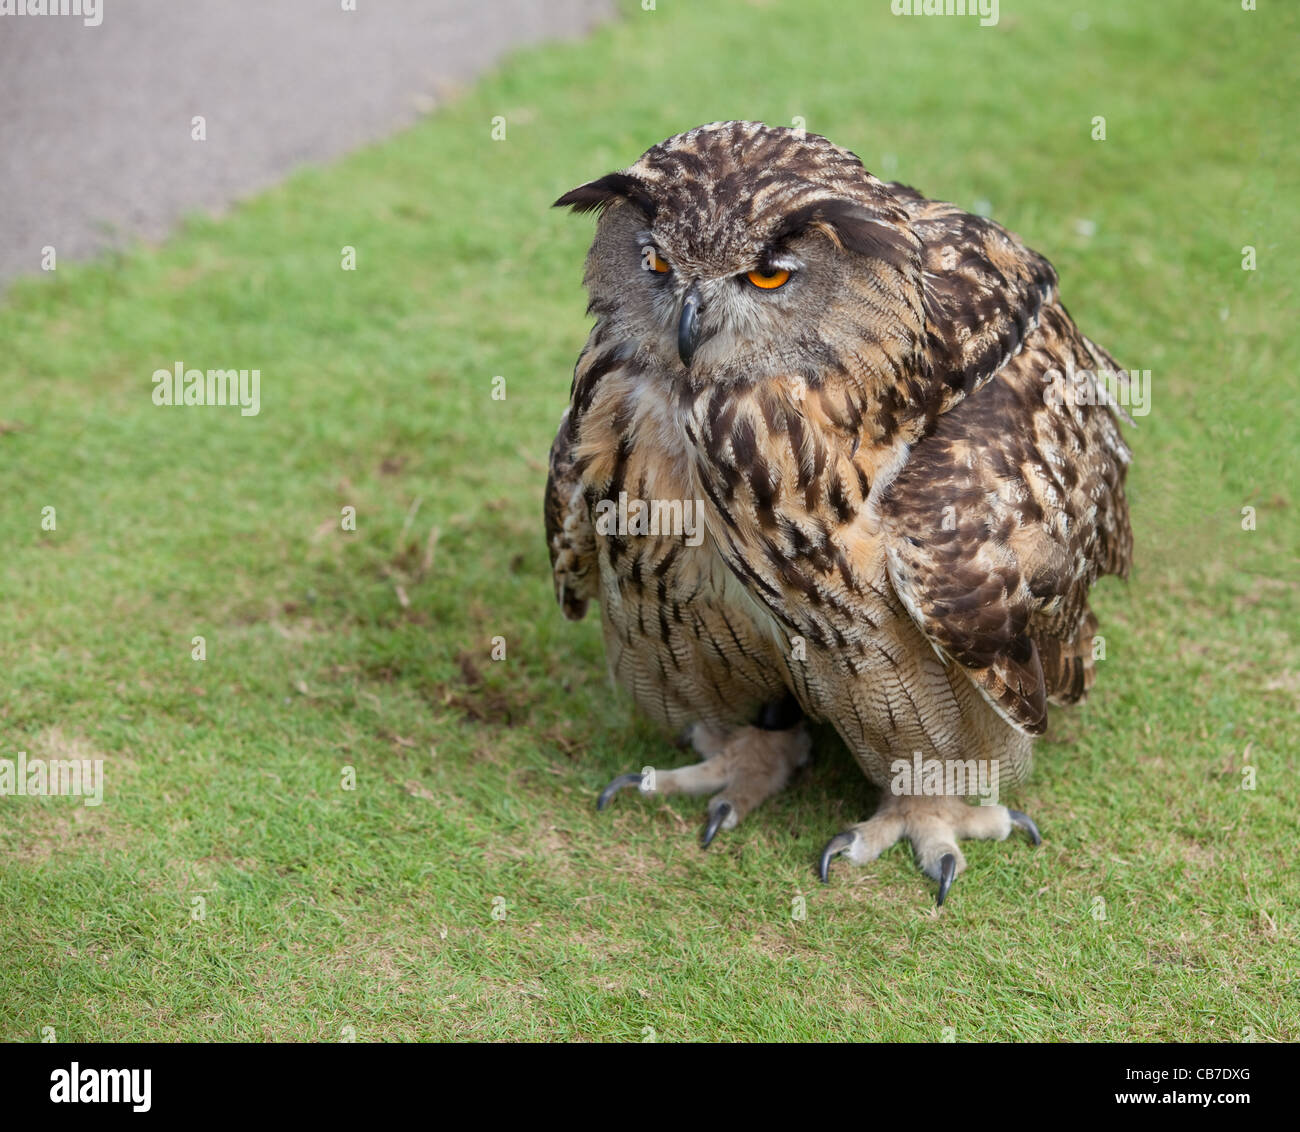 I Hate Mornings!  A European Eagle Owl with ruffled feathers and looking grumpy. - Stock Image